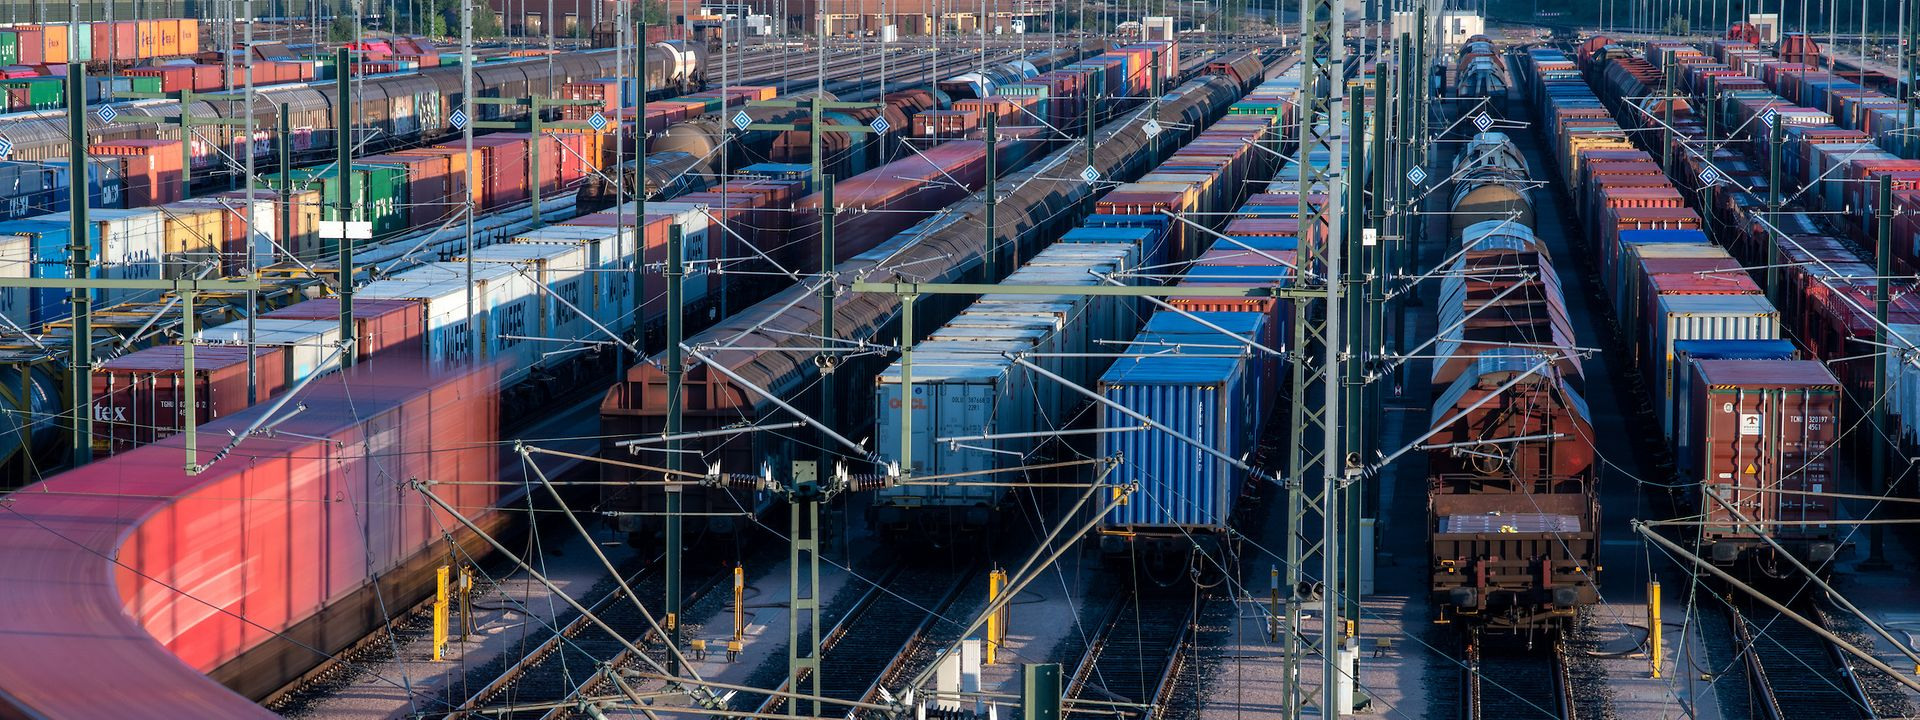 Trains at rail freight station.